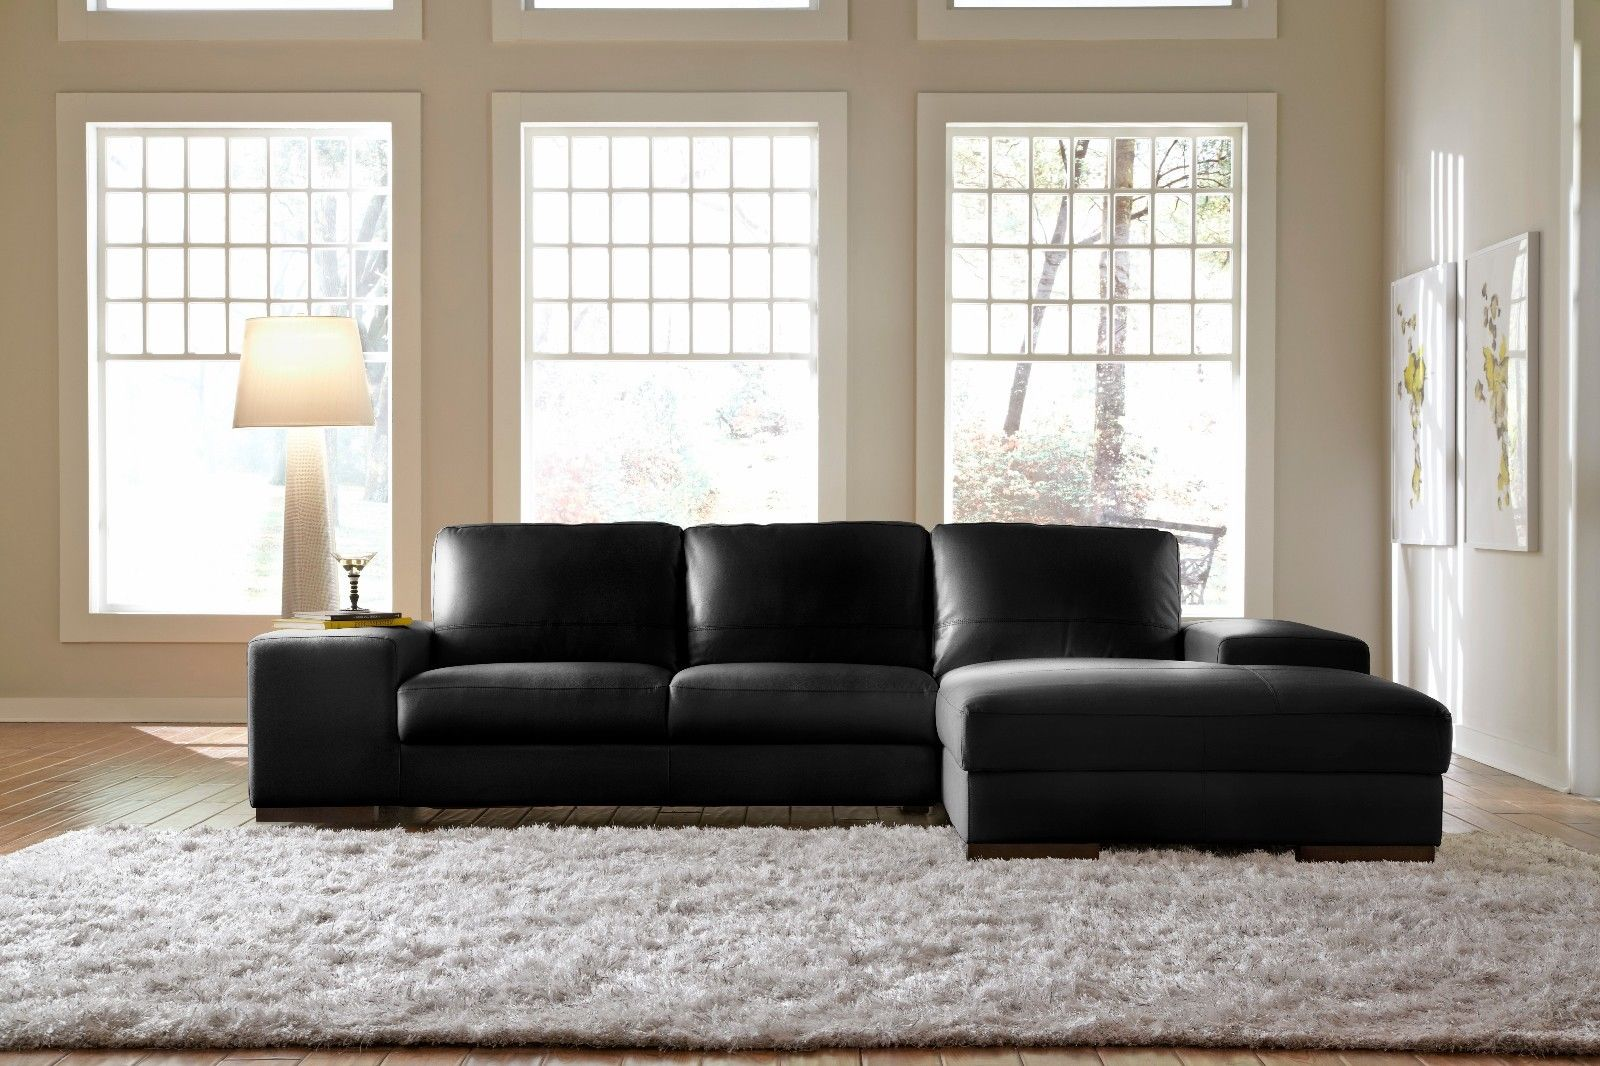 blue leather sectional sofa with chaise ... furniture brown faux leather curved sectional sofa plus round black PPQNWOK